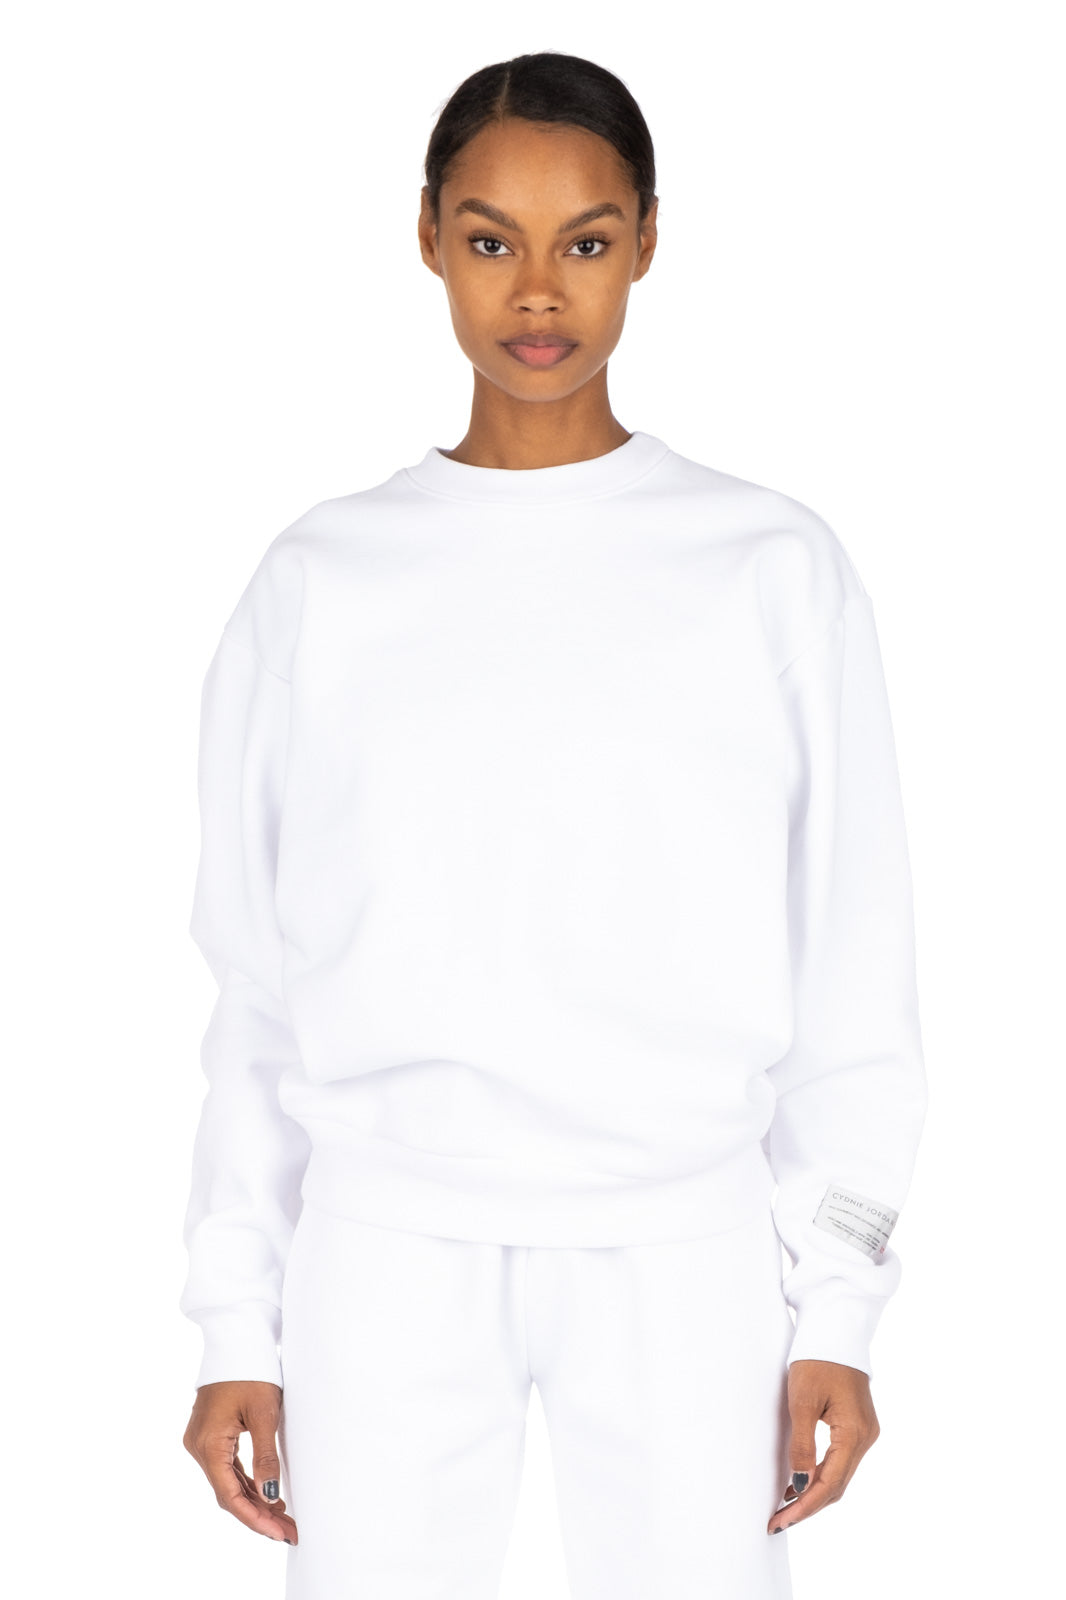 Unisex Sweatshirt by Cydnie Jordan, available on cydniejordanny.com for $125 Hailey Baldwin Top Exact Product